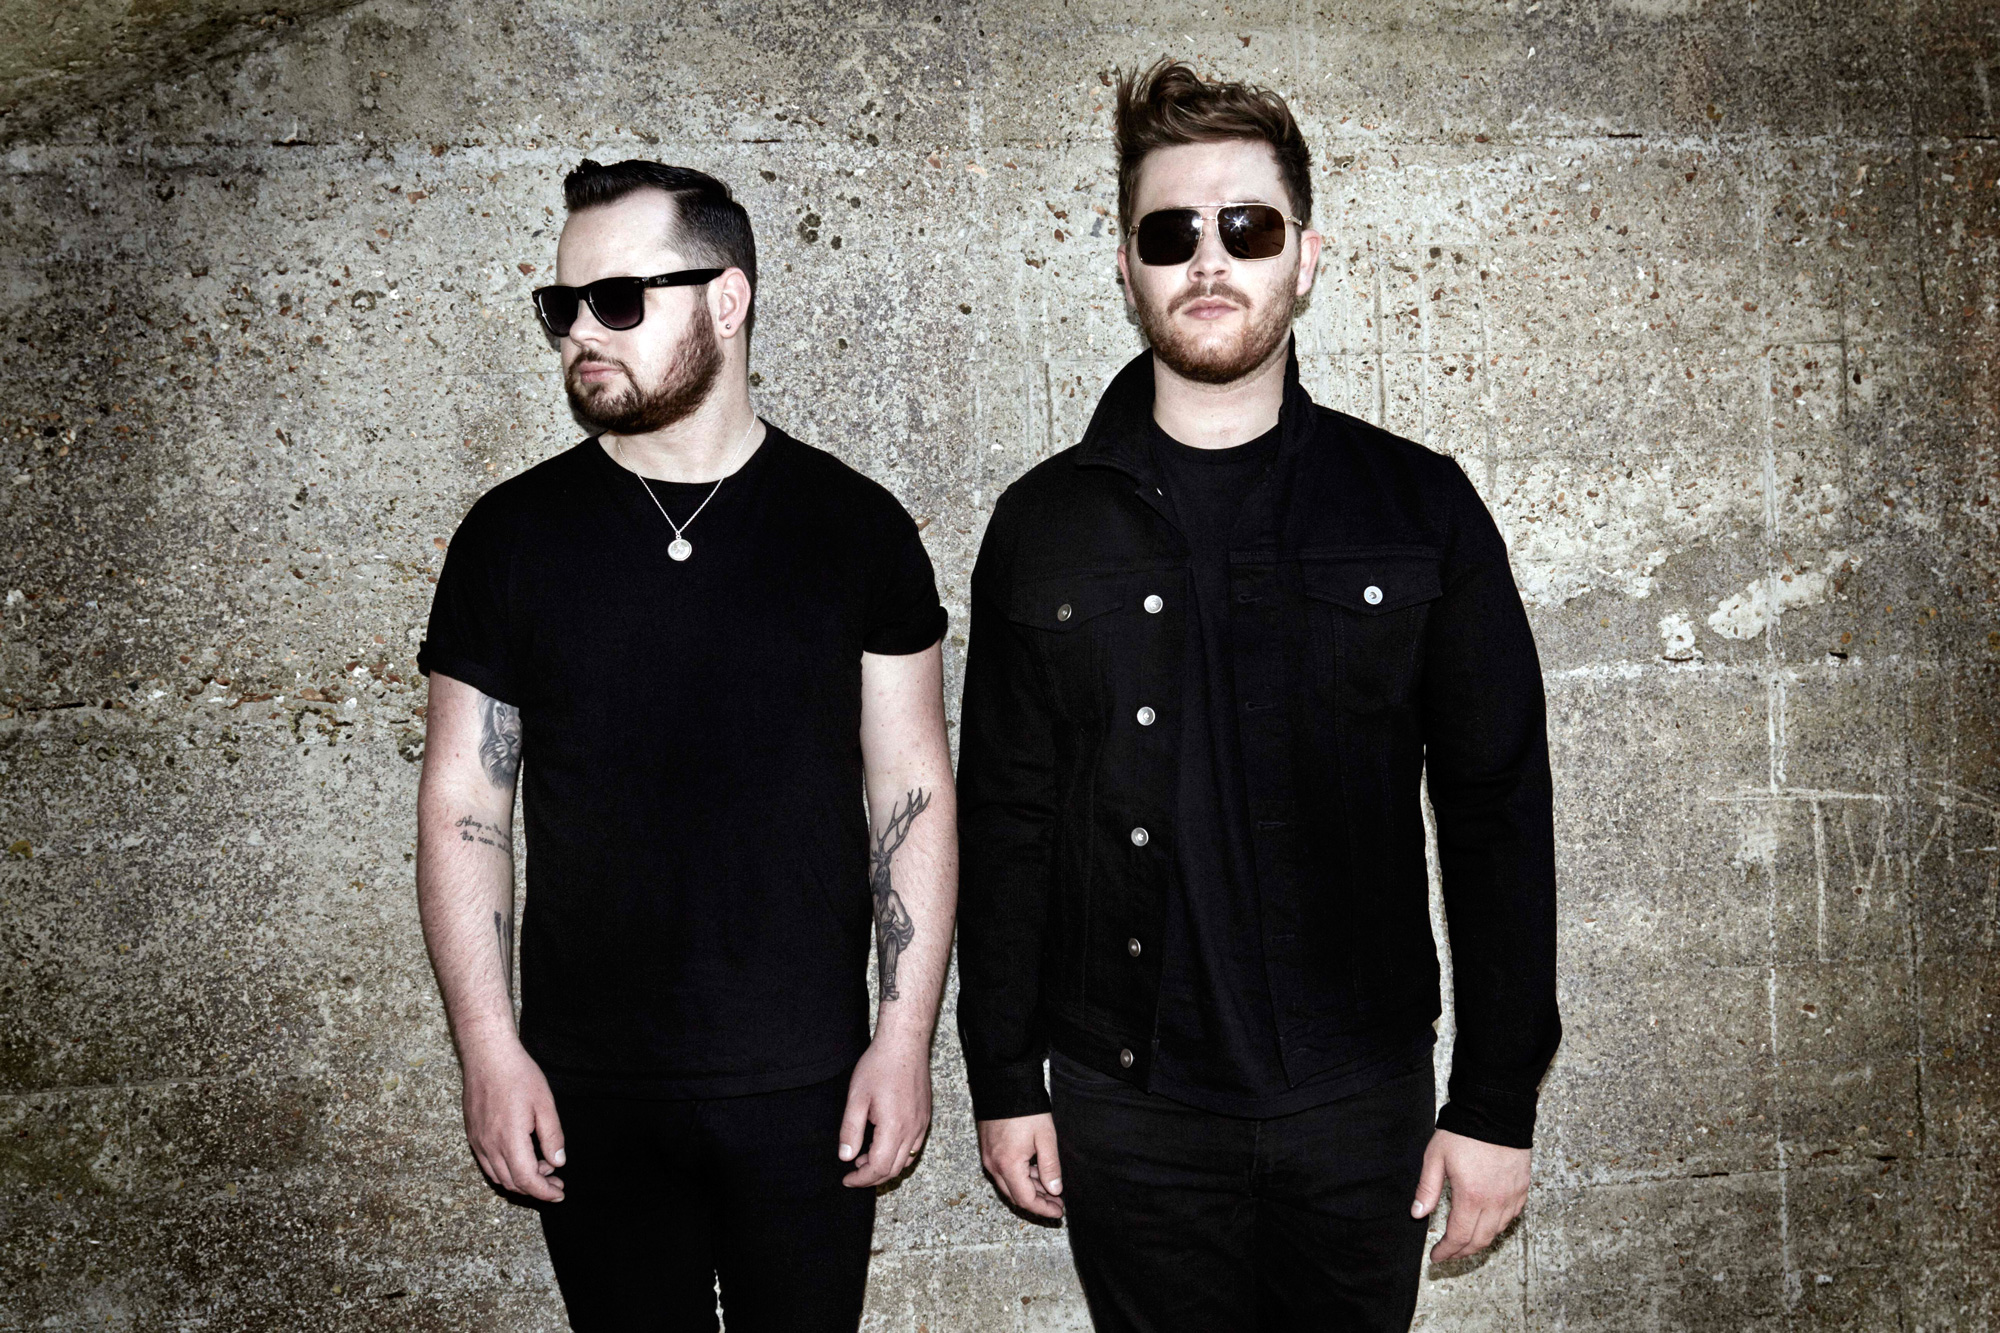 Royal Blood, Jungle, FKA twigs nominated for Mercury Prize 2014